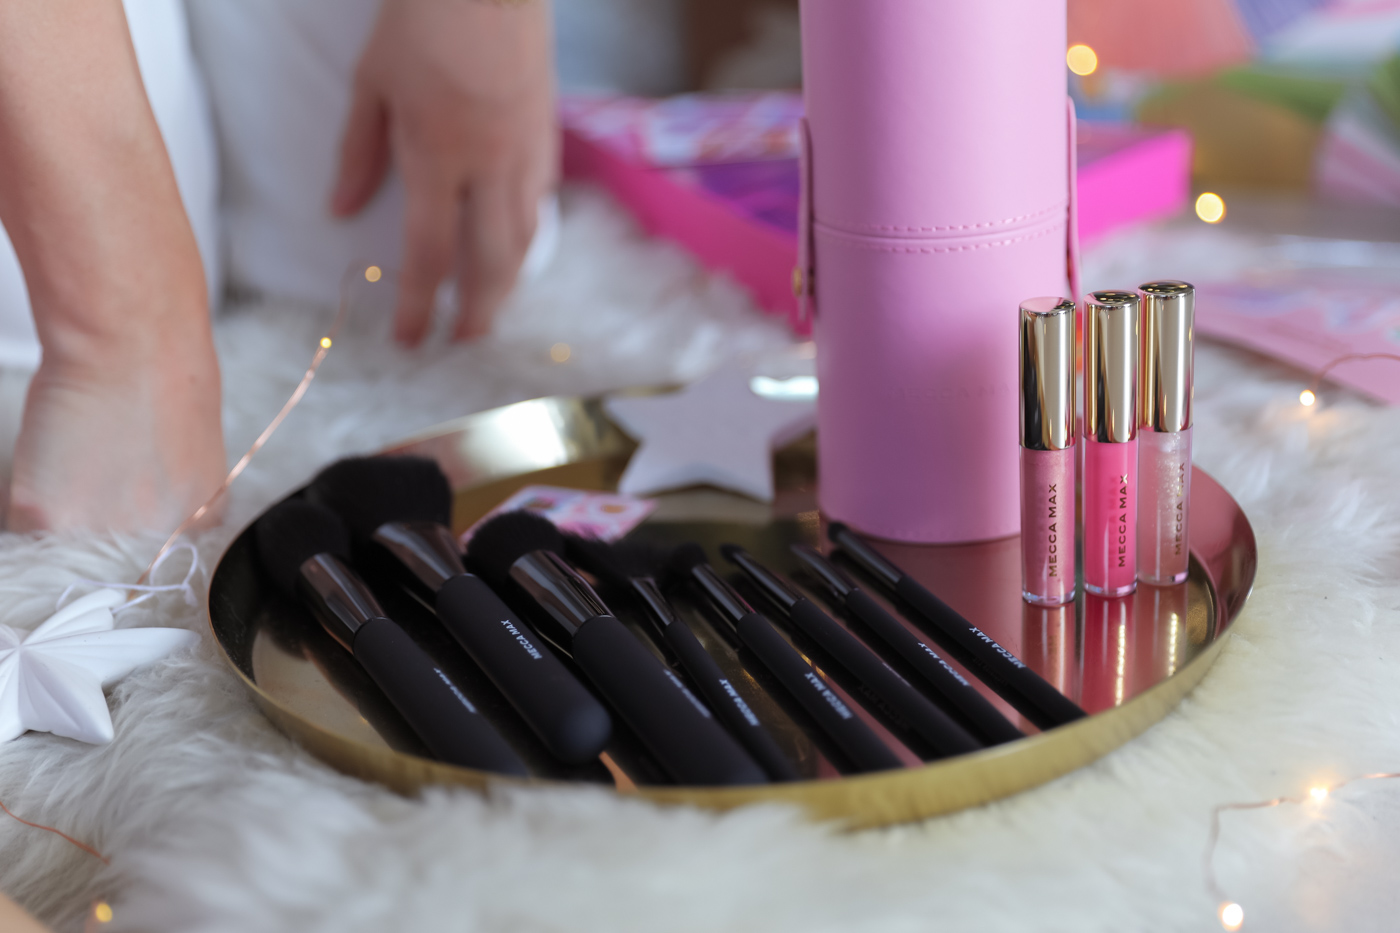 Mecca Max makeup brushes for Christmas gifts from Australian beauty retailer Mecca